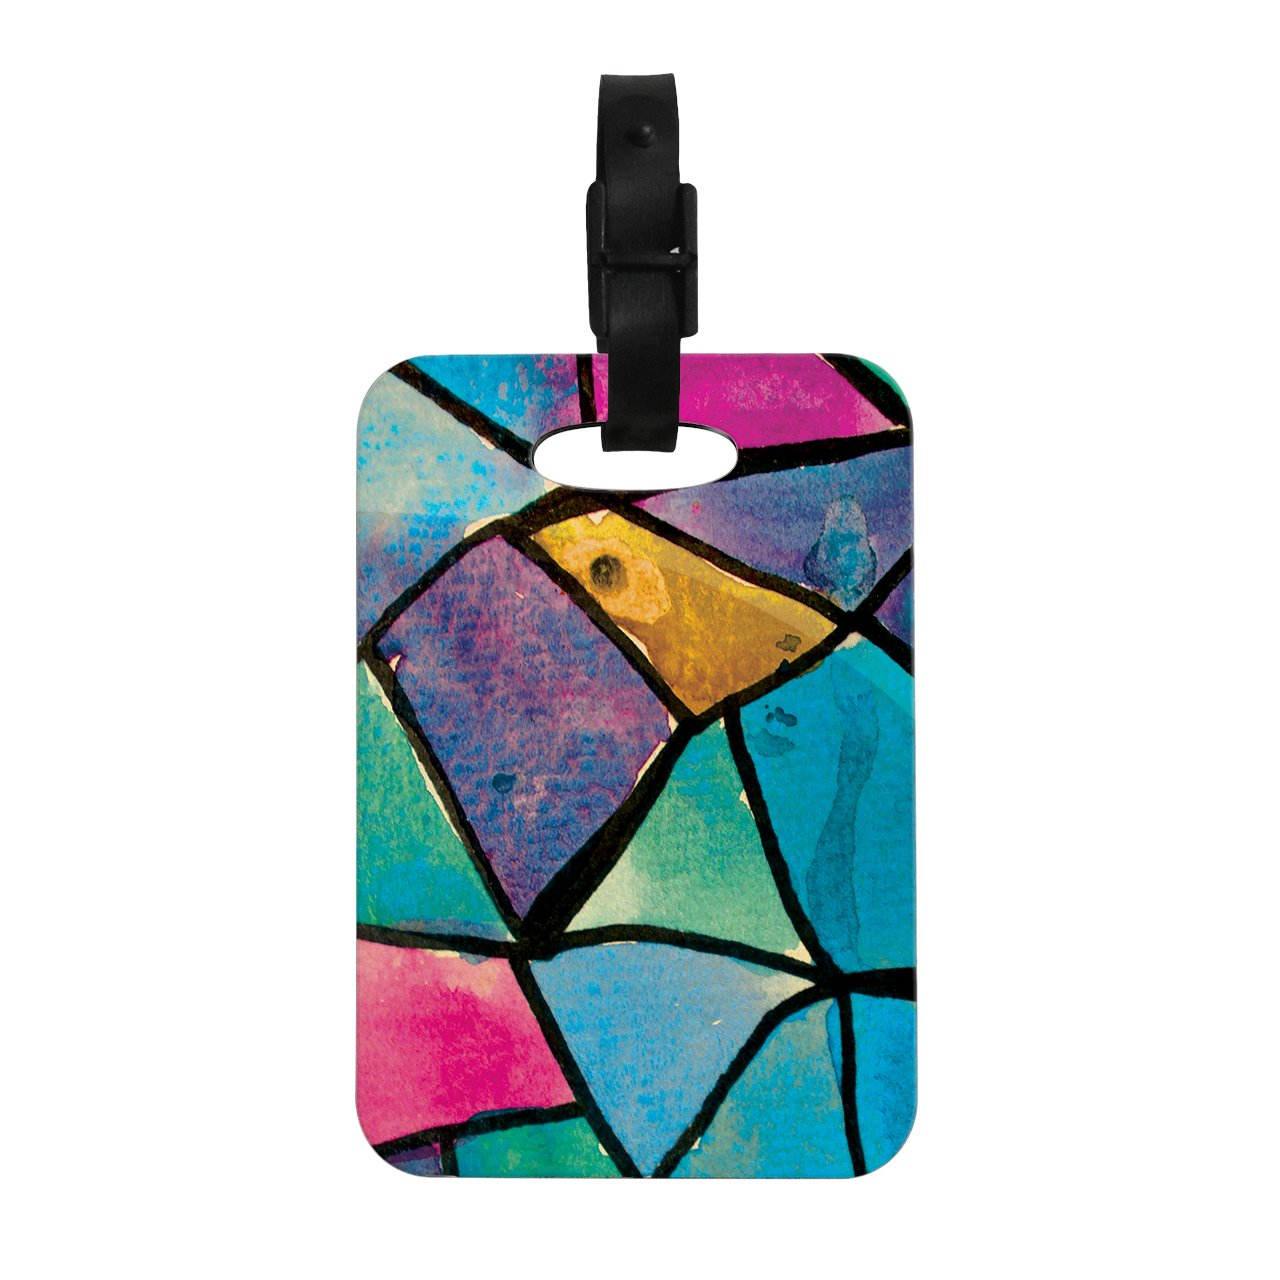 Kess InHouse Theresa Giolzetti Stain Glass 2'' Decorative Luggage Tag, 4 by 4-Inch